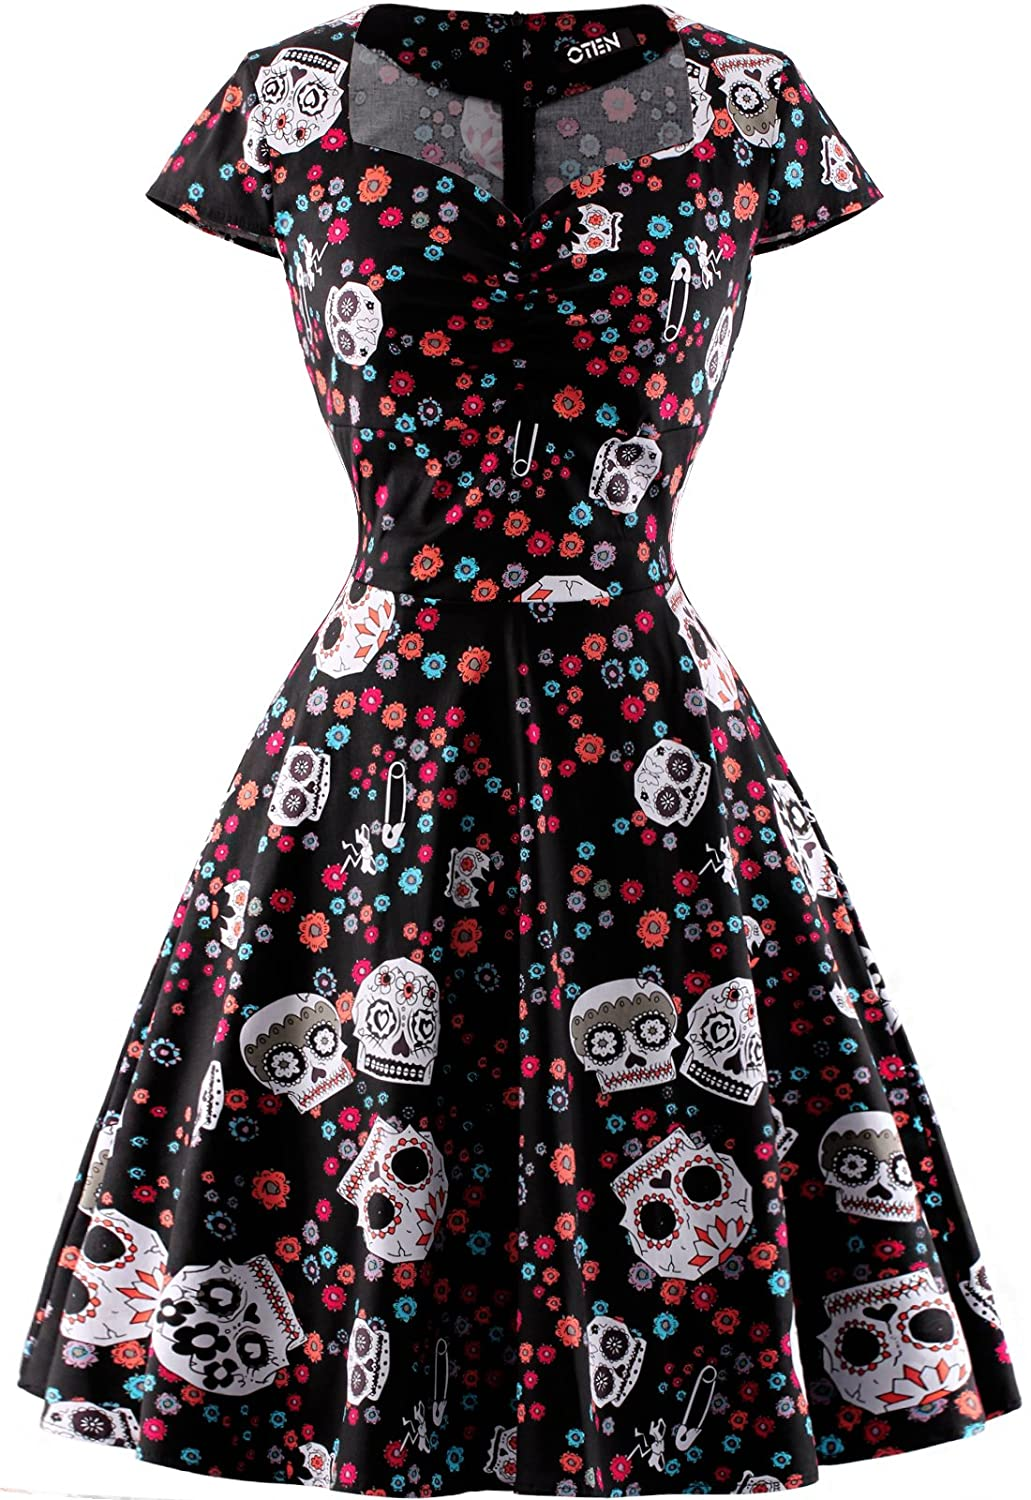 d8dd1a8477fe OTEN Women s Polka Dot Sugar Skull Vintage Swing Retro Rockabilly Cocktail  Party Dress Cap Sleeve at Amazon Women s Clothing store